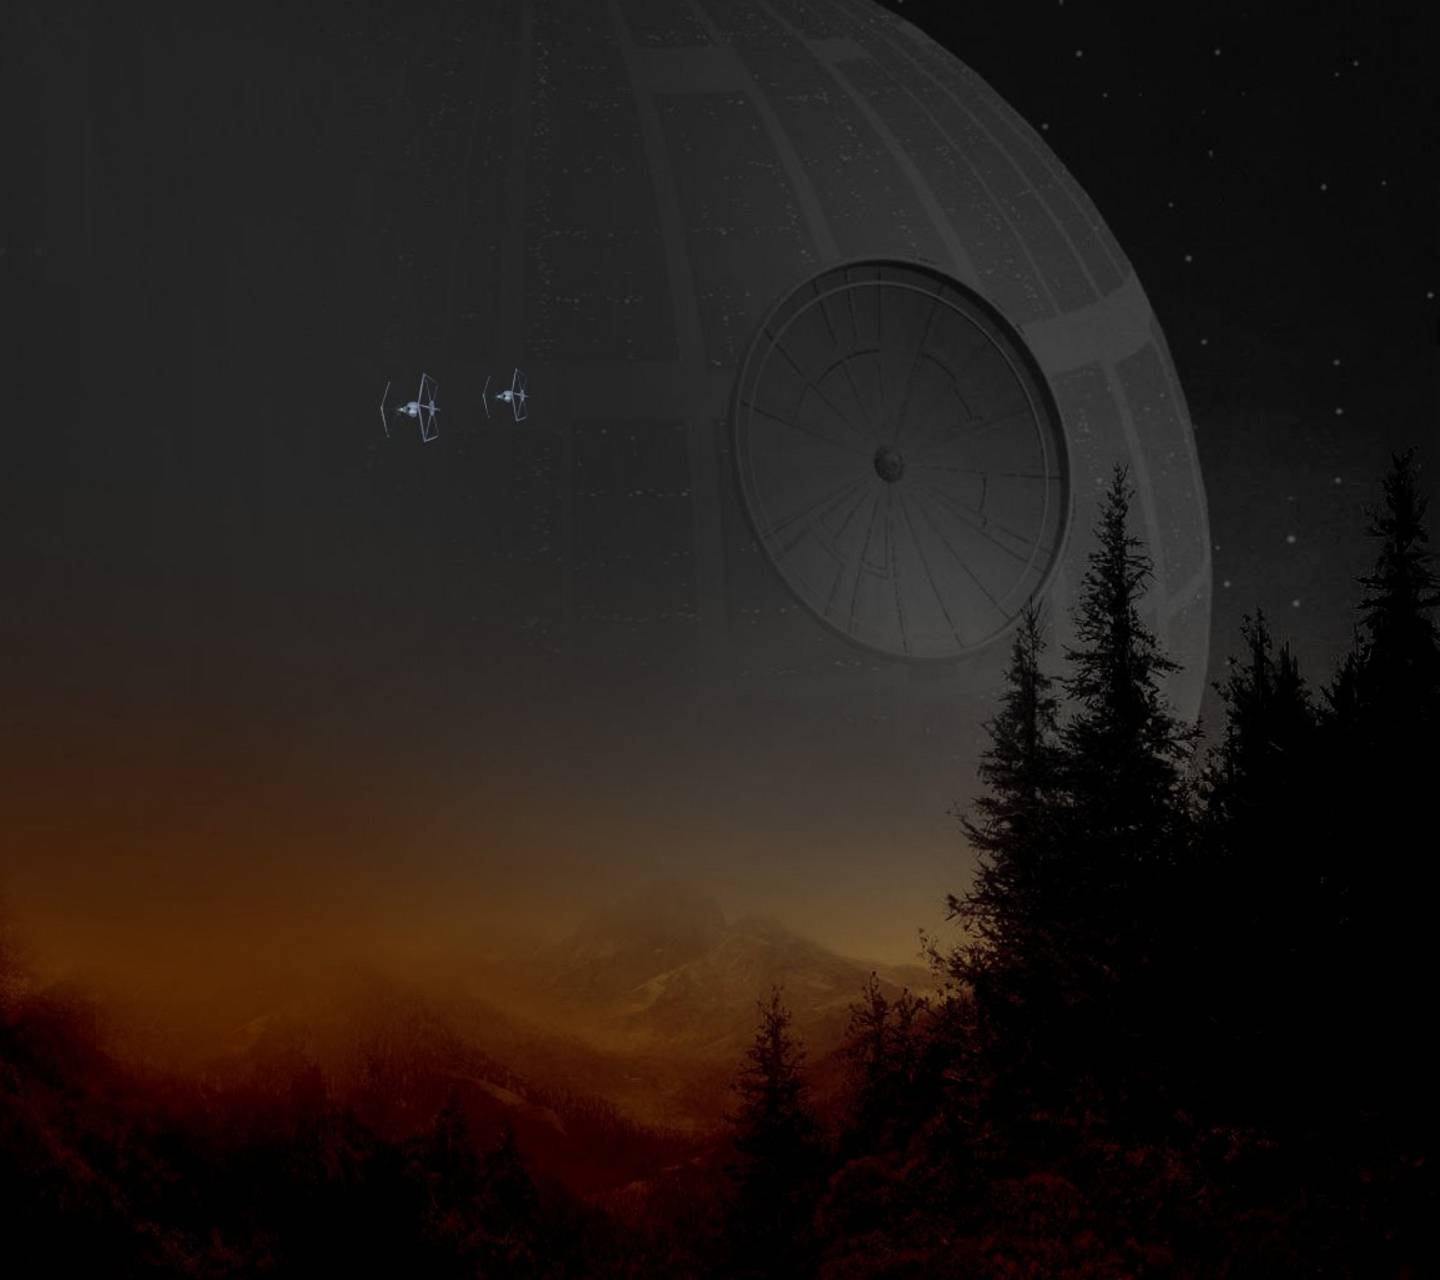 Death Star Wallpaper By Exarkun1138 80 Free On Zedge